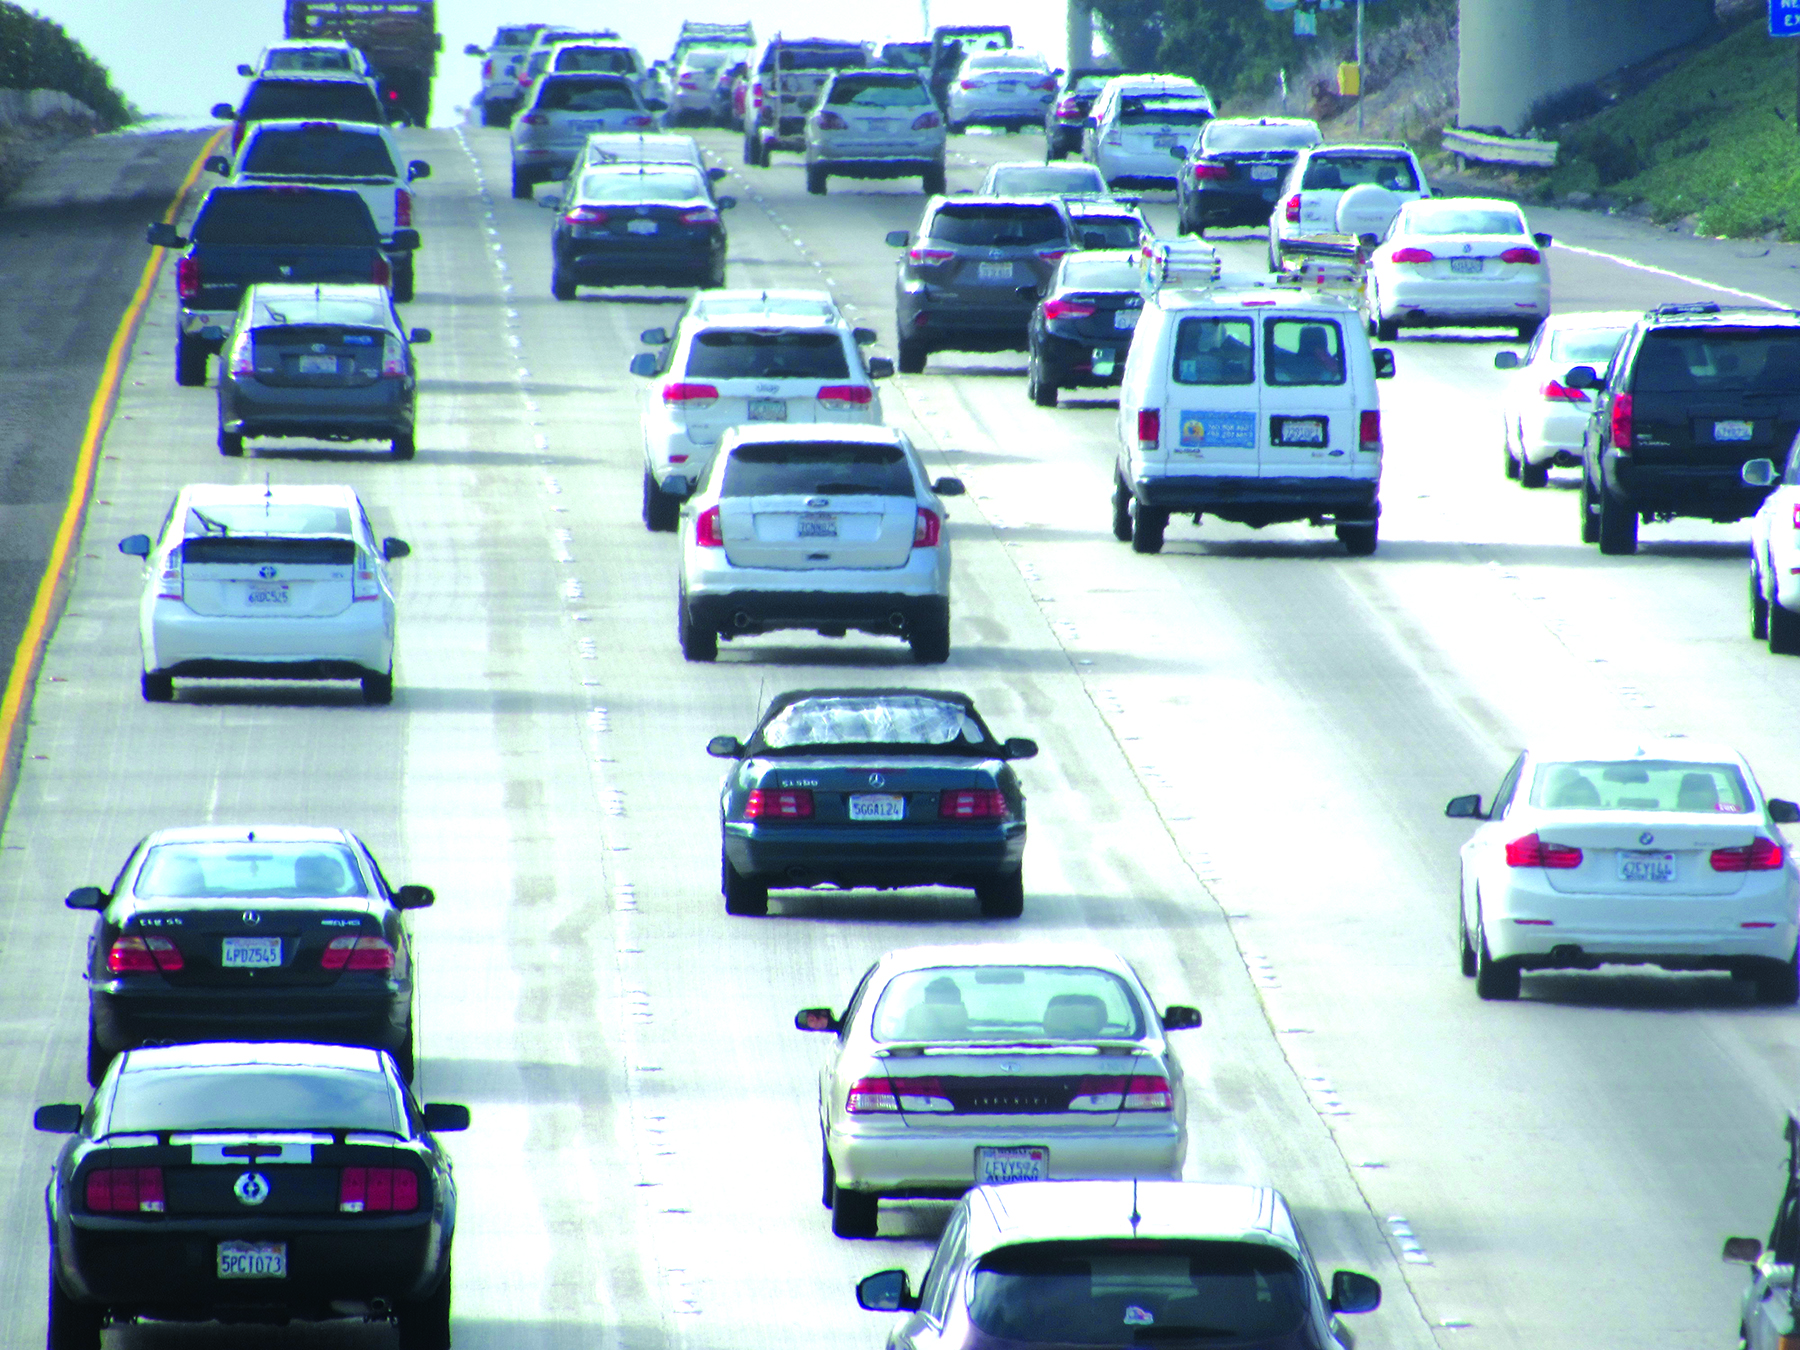 SANDAG reshapes county's transportation system